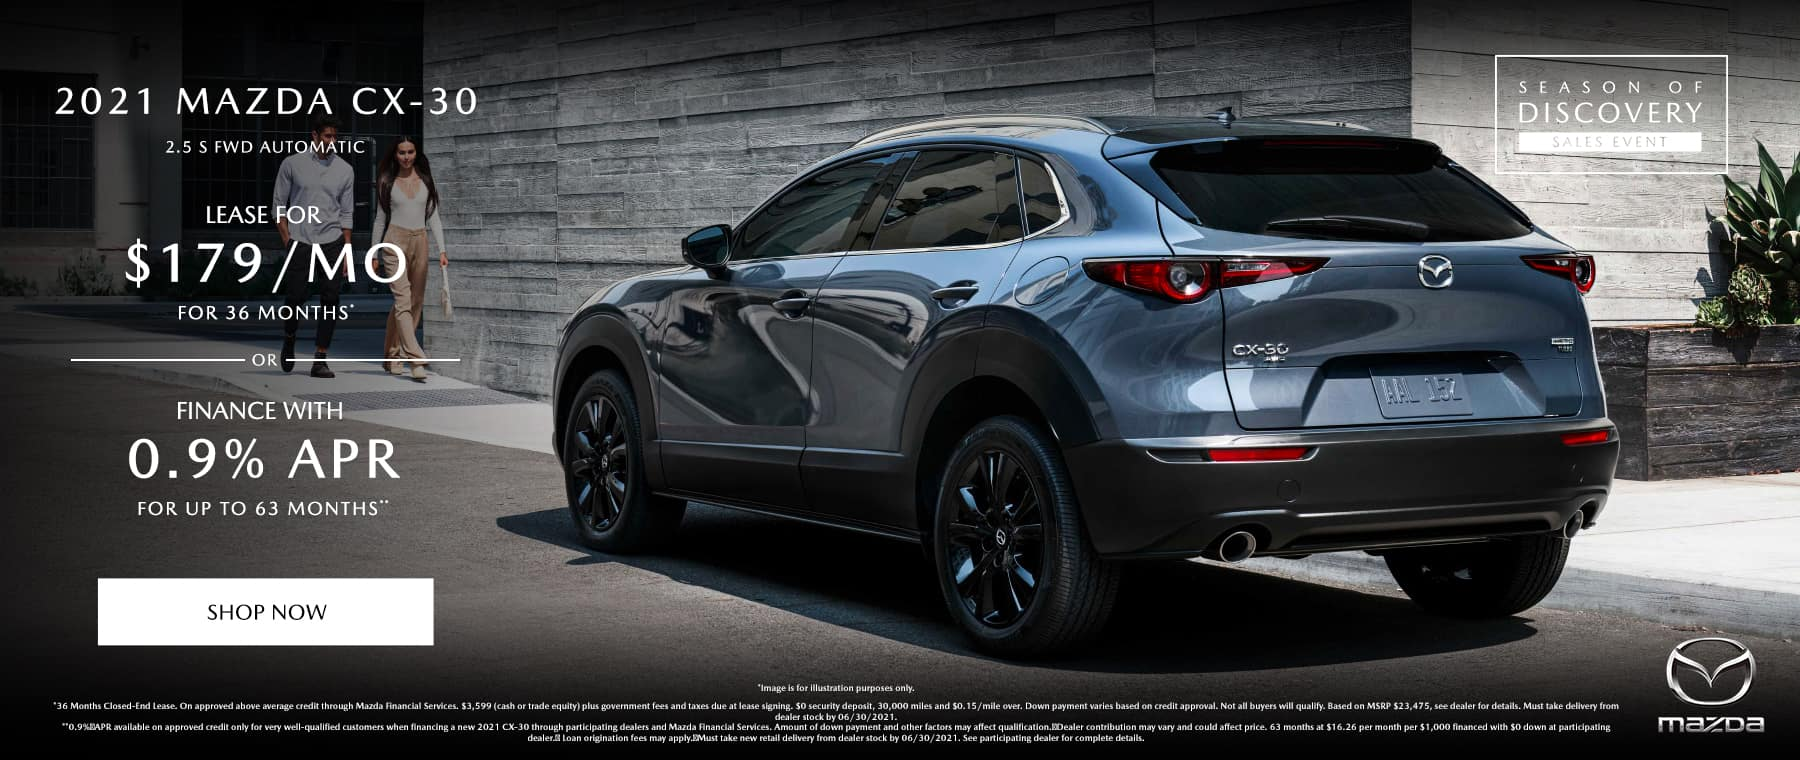 2021 MAZDA CX-30 2.5 S FWD AUTOMATIC (MODEL#C3025S2A) $179/month @ 36 months*, 0.9% APR for 63 Months**